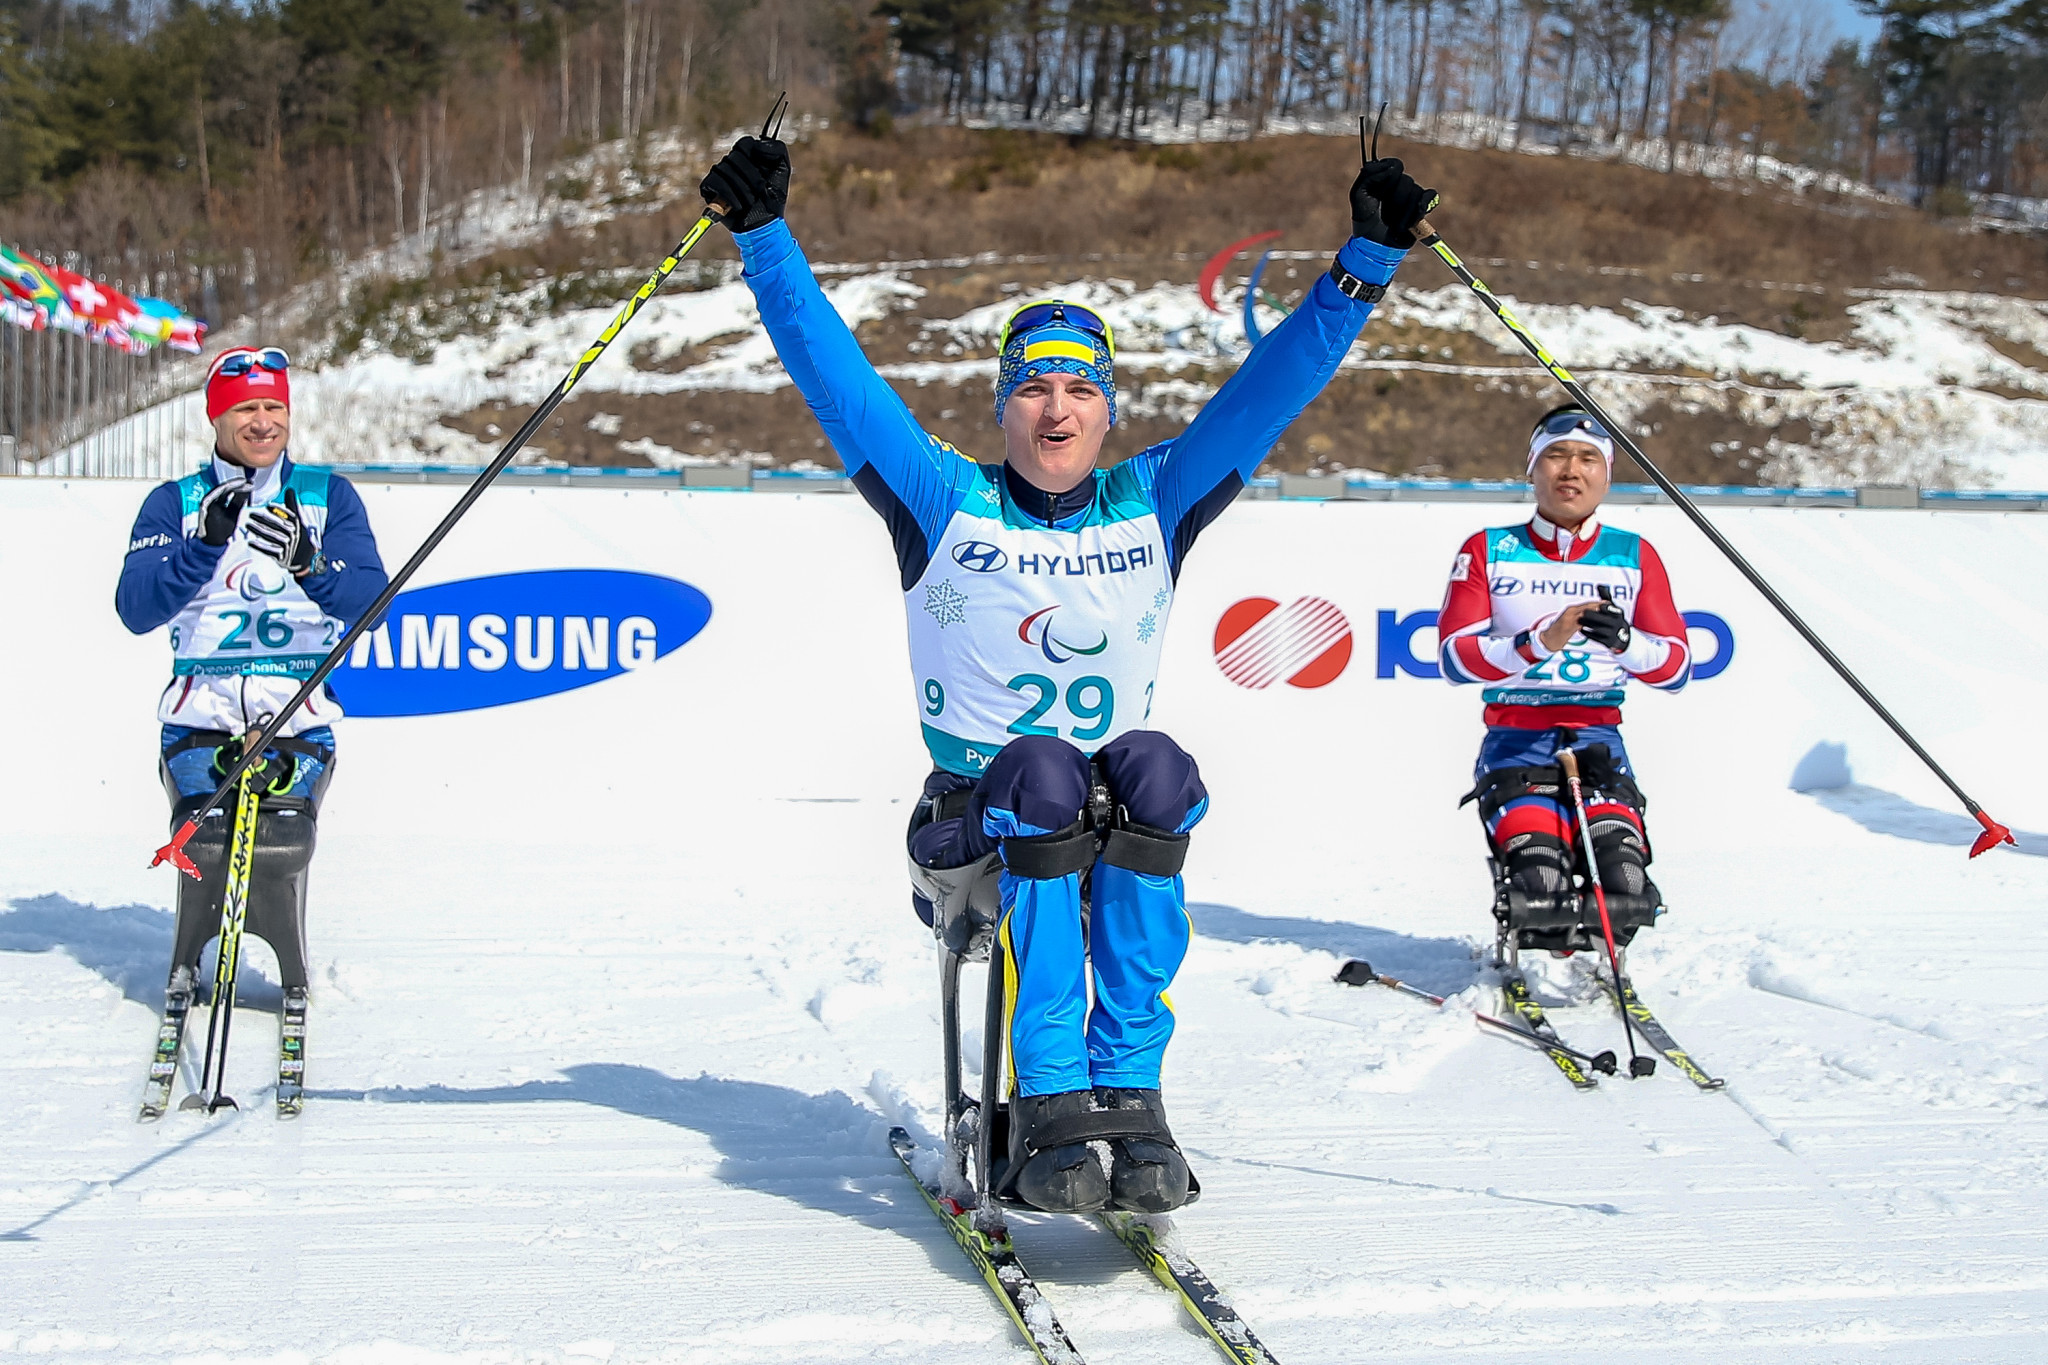 Ukraine's Maksym Yarovyi won gold in the men's sitting 15 kilometres cross-country race on day two of the Pyeongchang 2018 Winter Paralympics ©Getty Images